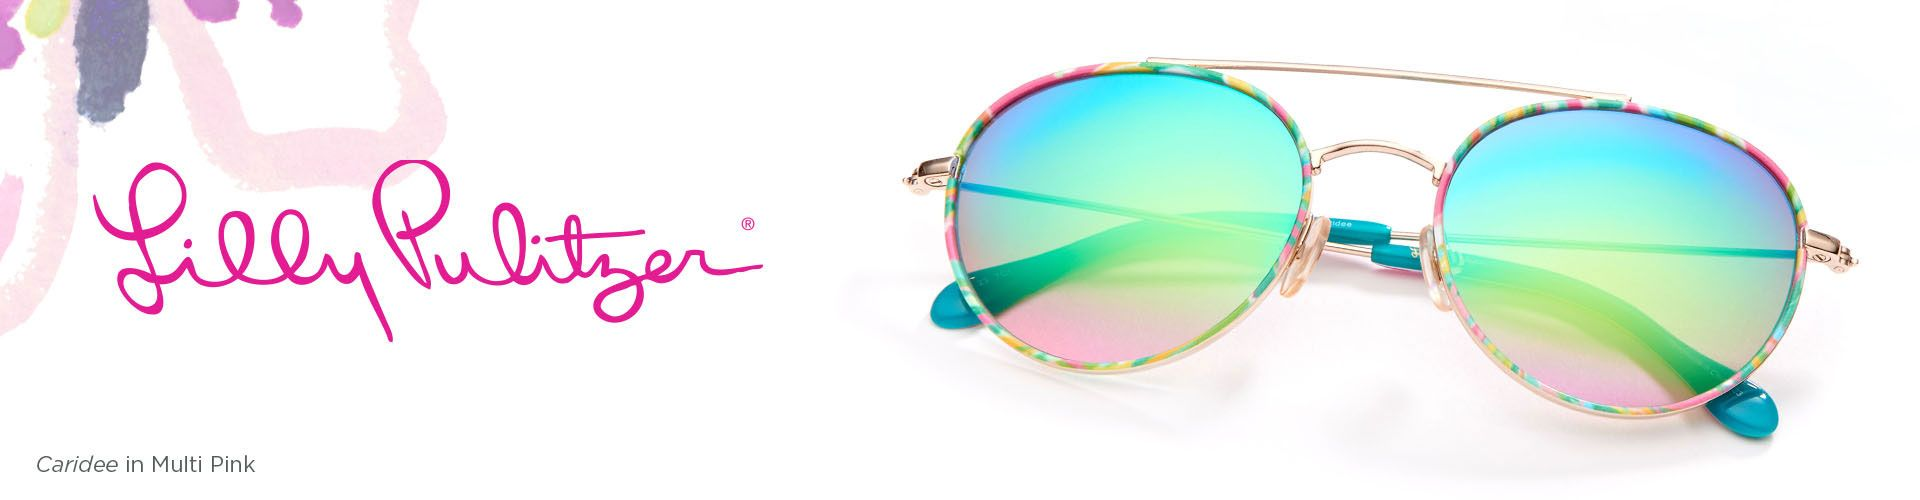 Shop Lilly Pulitzer Sunglasses - model Caridee featured